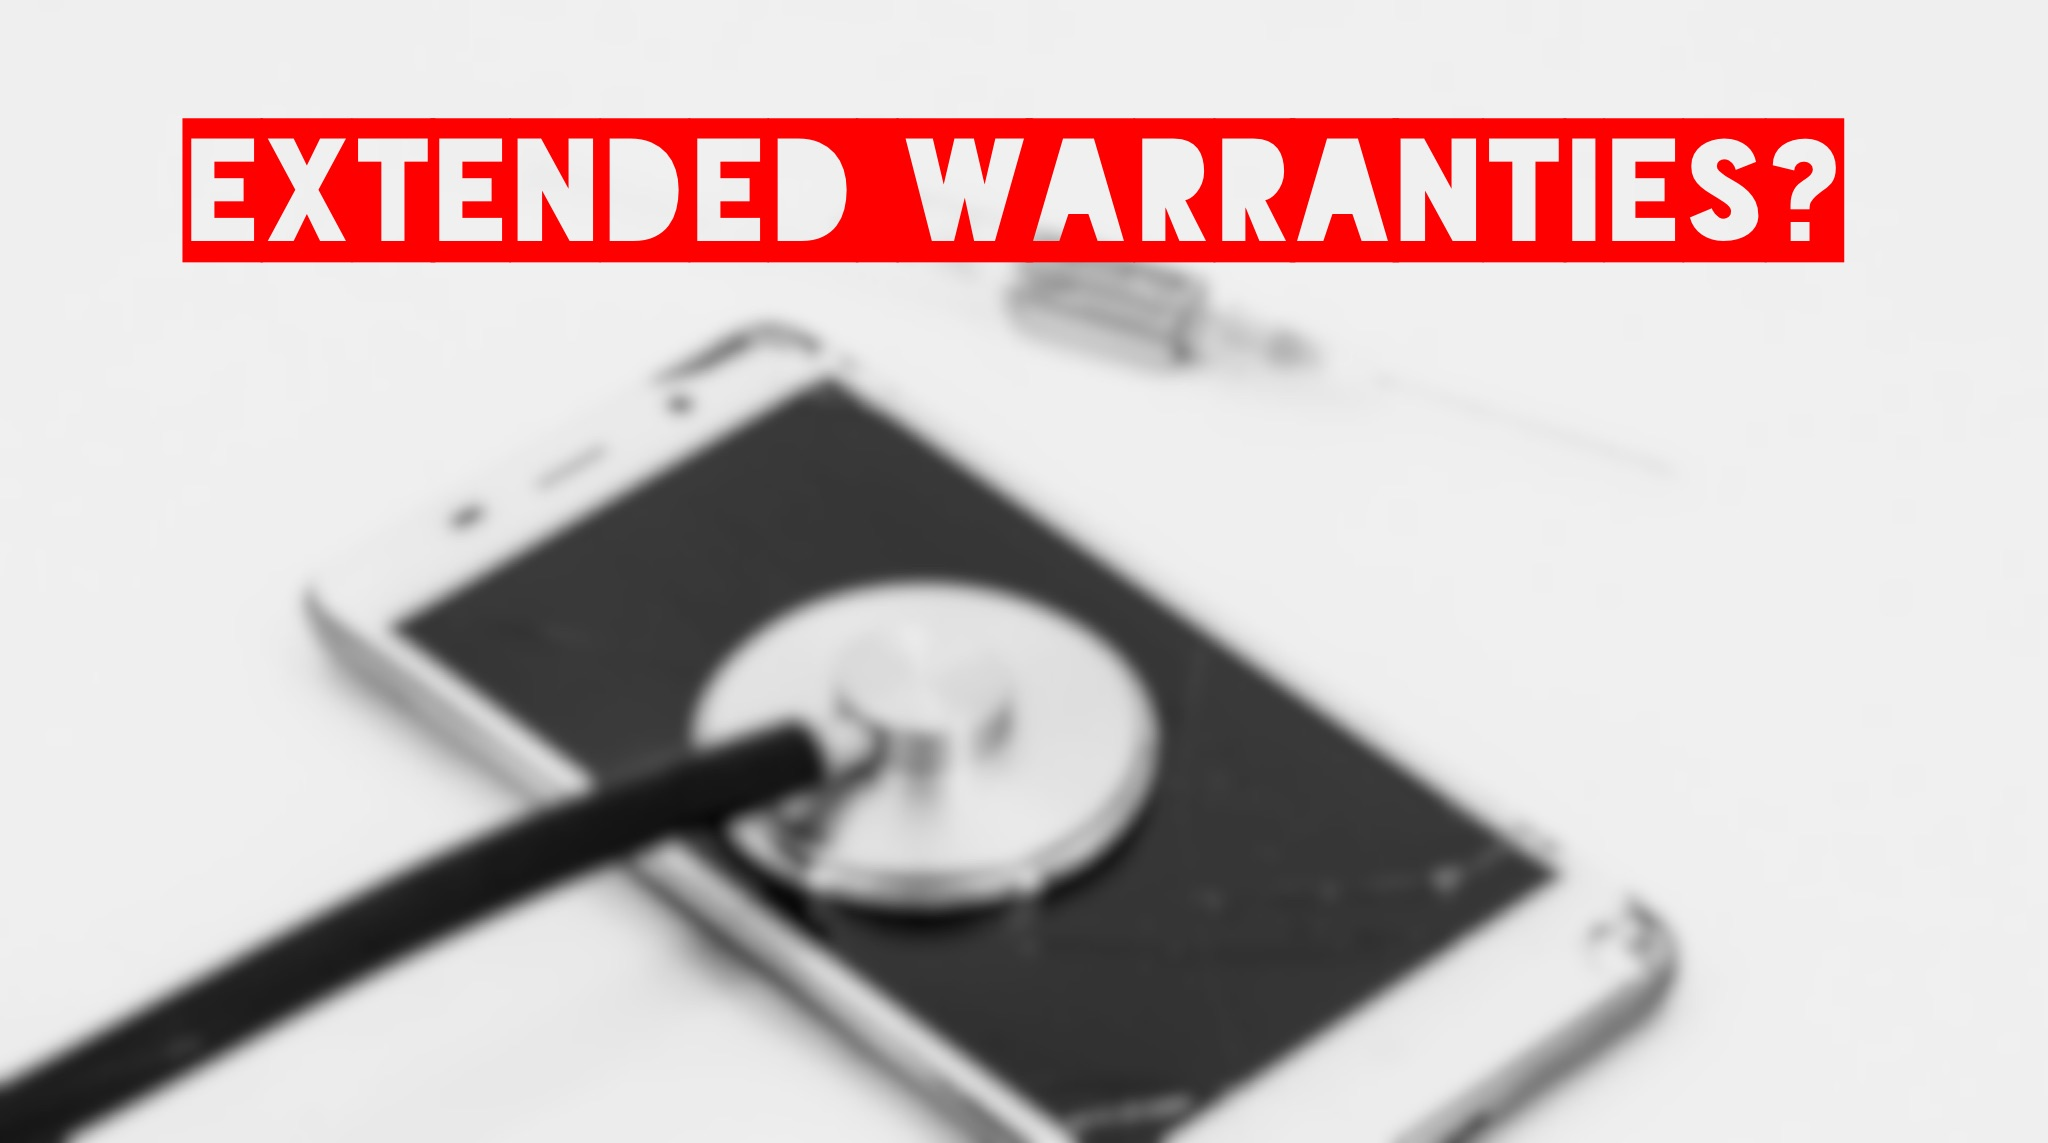 Are Extended Warranties Bad?